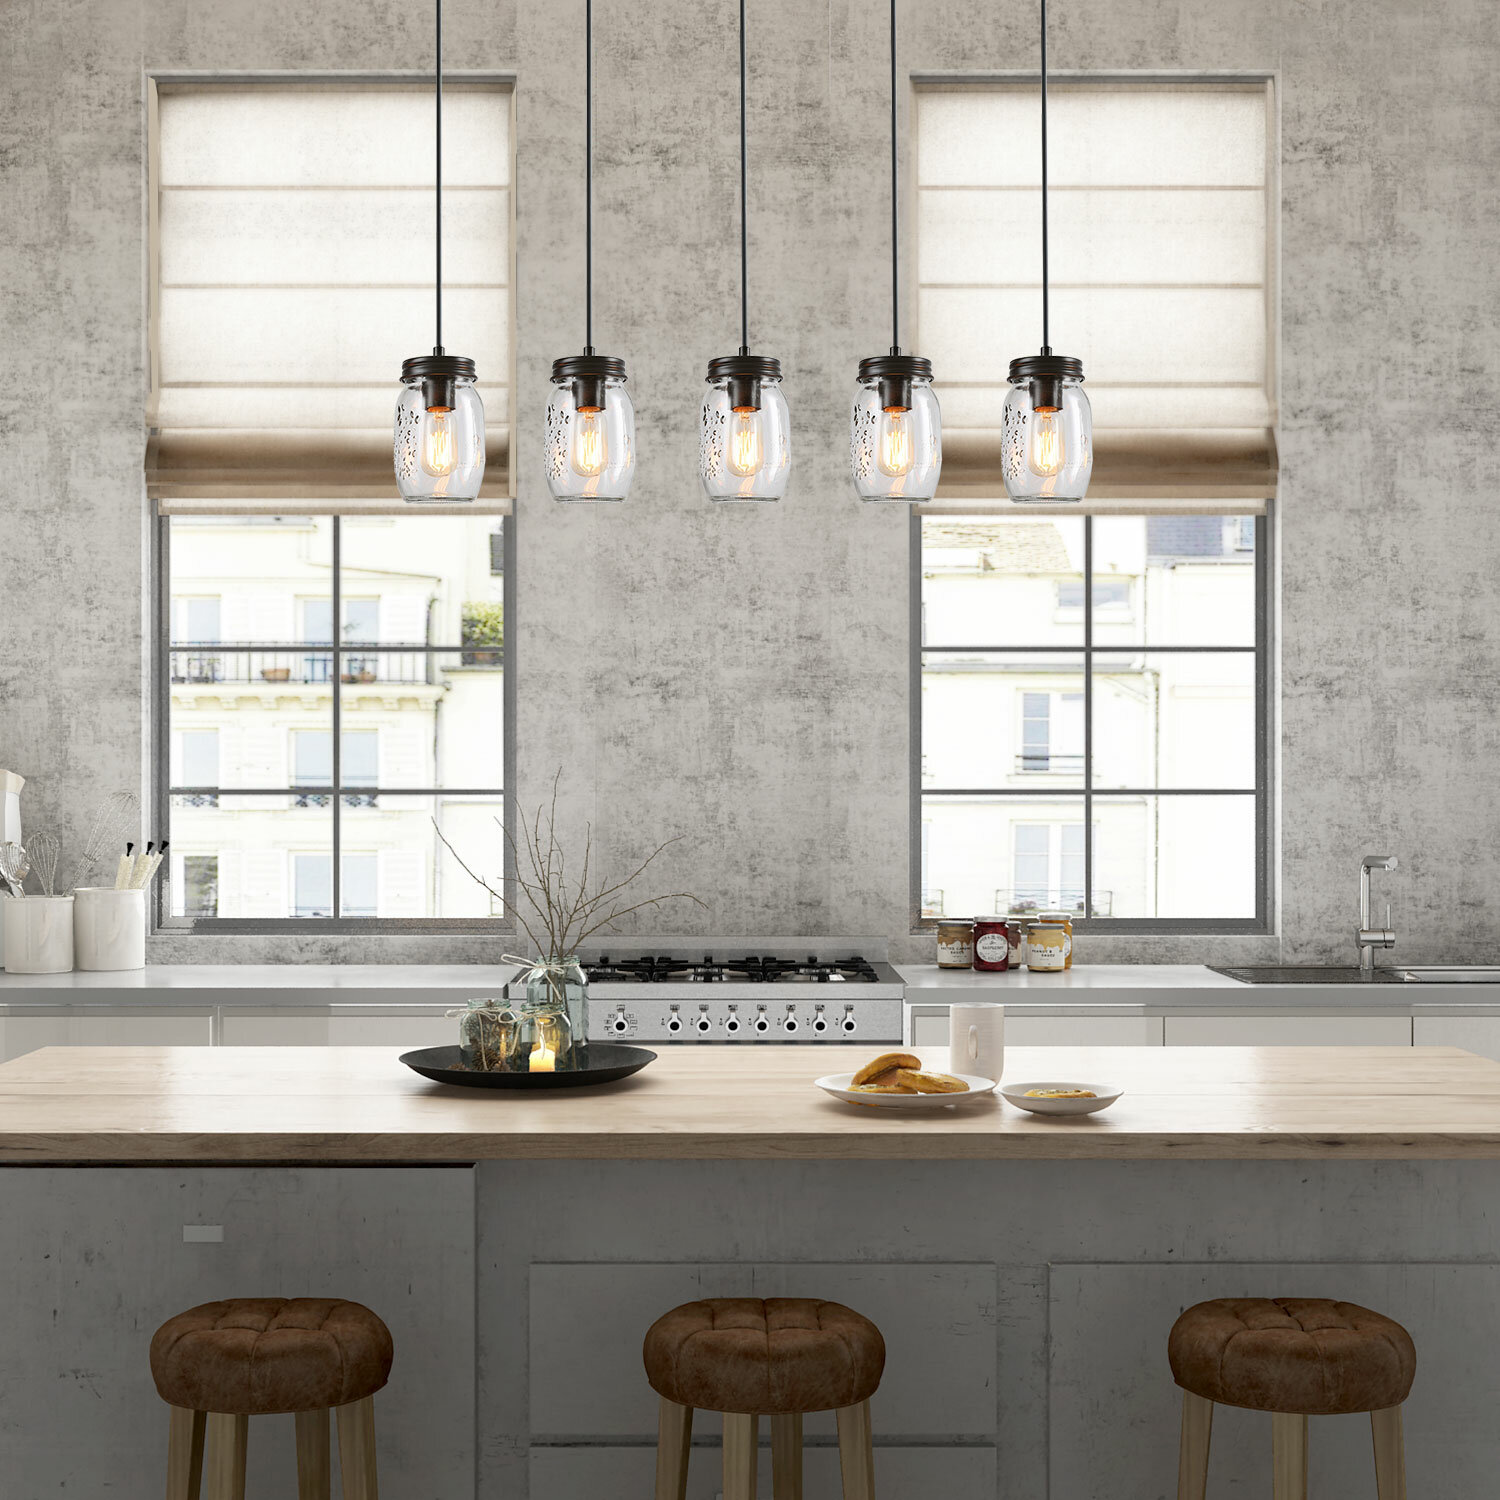 10 - Light Kitchen Island Linear Pendant